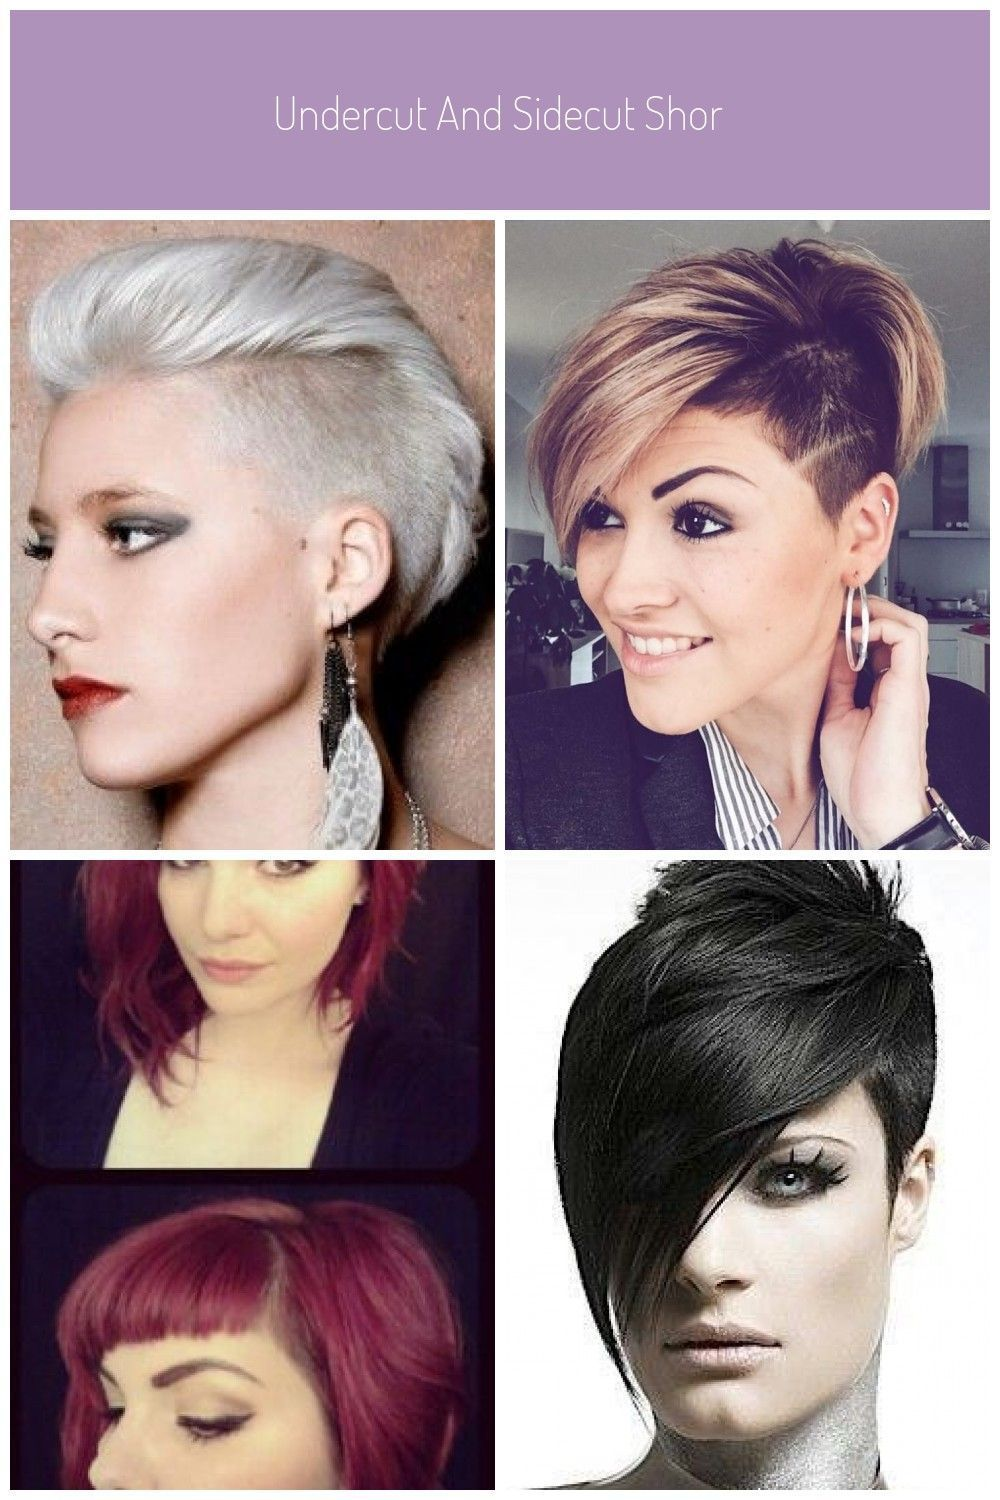 Undercut And Sidecut Short Hairstyles 2014 Frisuren Kurzhaar Asymetrisch Frisuren Kurzhaar Asymetri Short Hair Styles 2014 Hair Styles 2014 Short Hair Styles